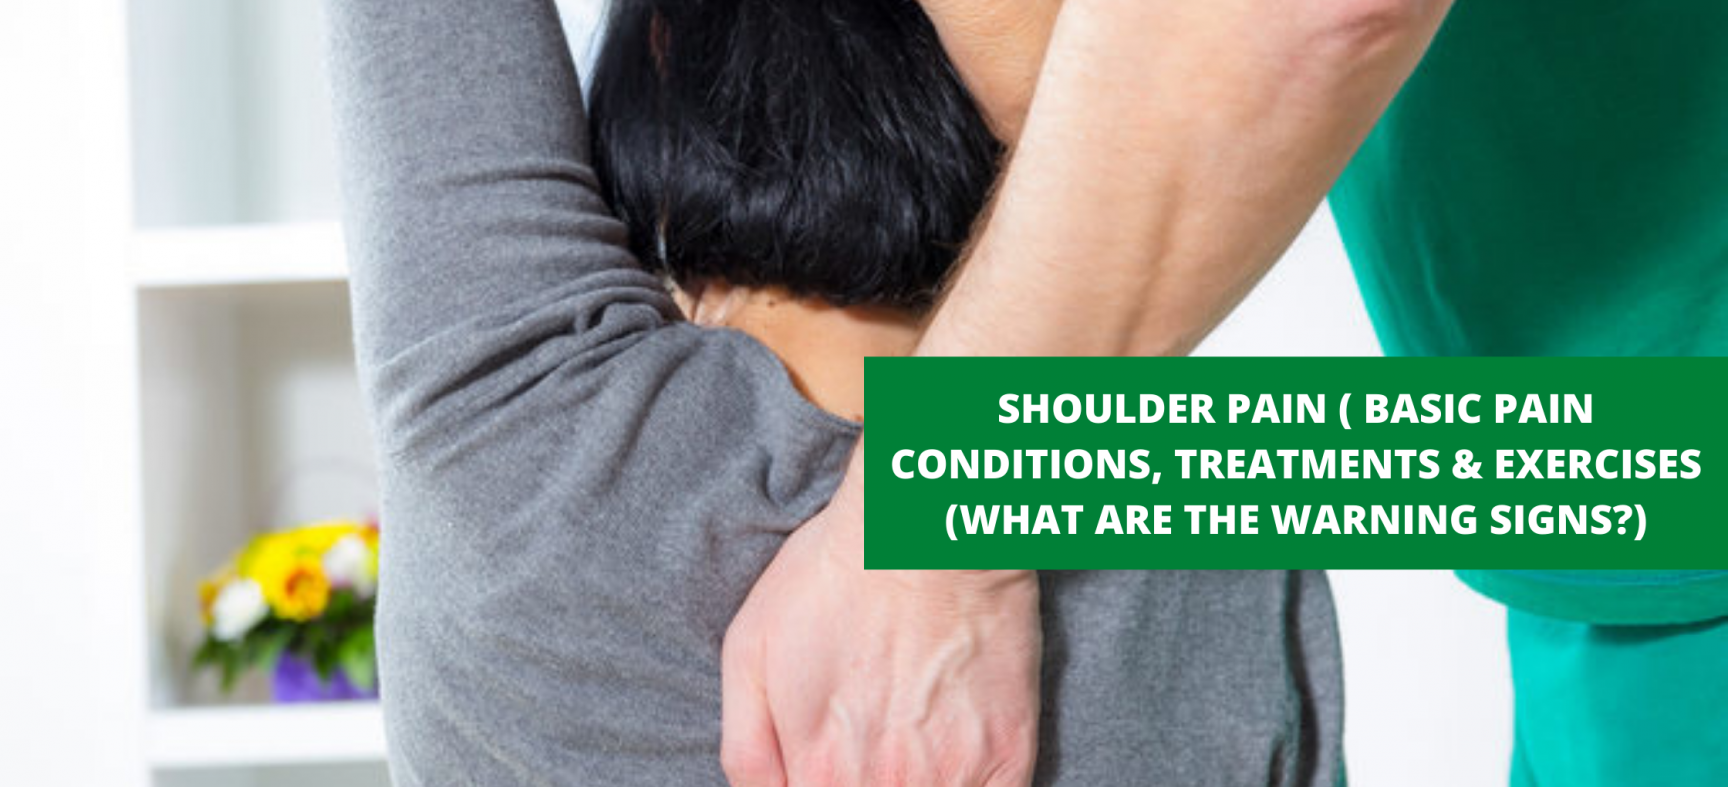 SHOULDER PAIN ( BASIC PAIN CONDITIONS, TREATMENTS & EXERCISES (WHAT ARE THE WARNING SIGNS?)